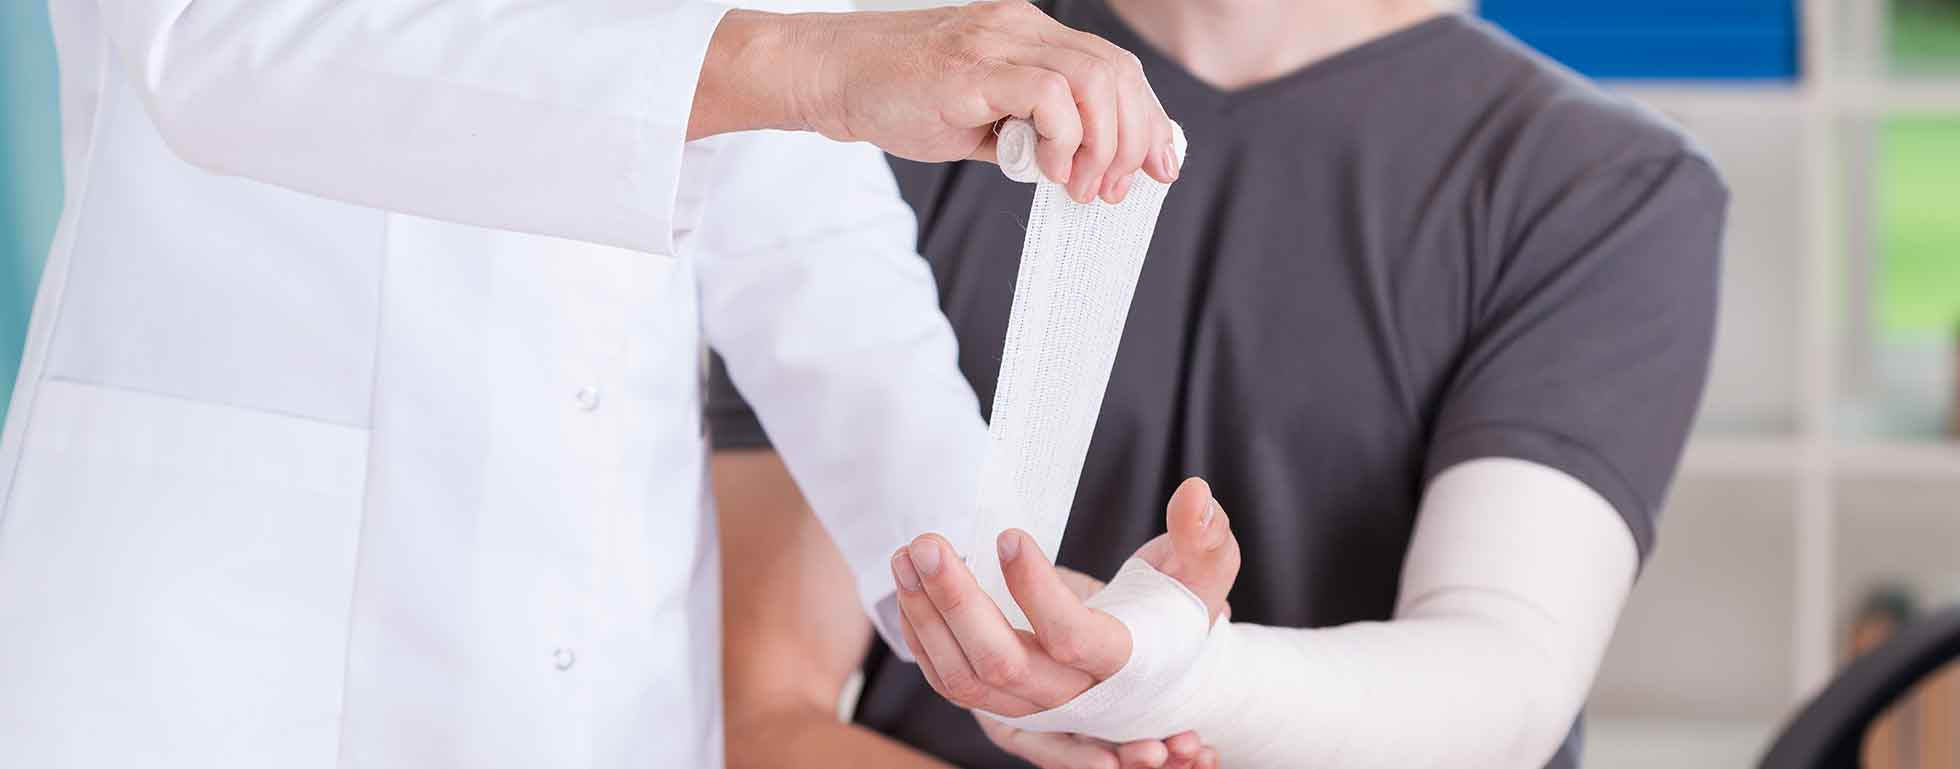 Orthopedist wrappin patient's arm